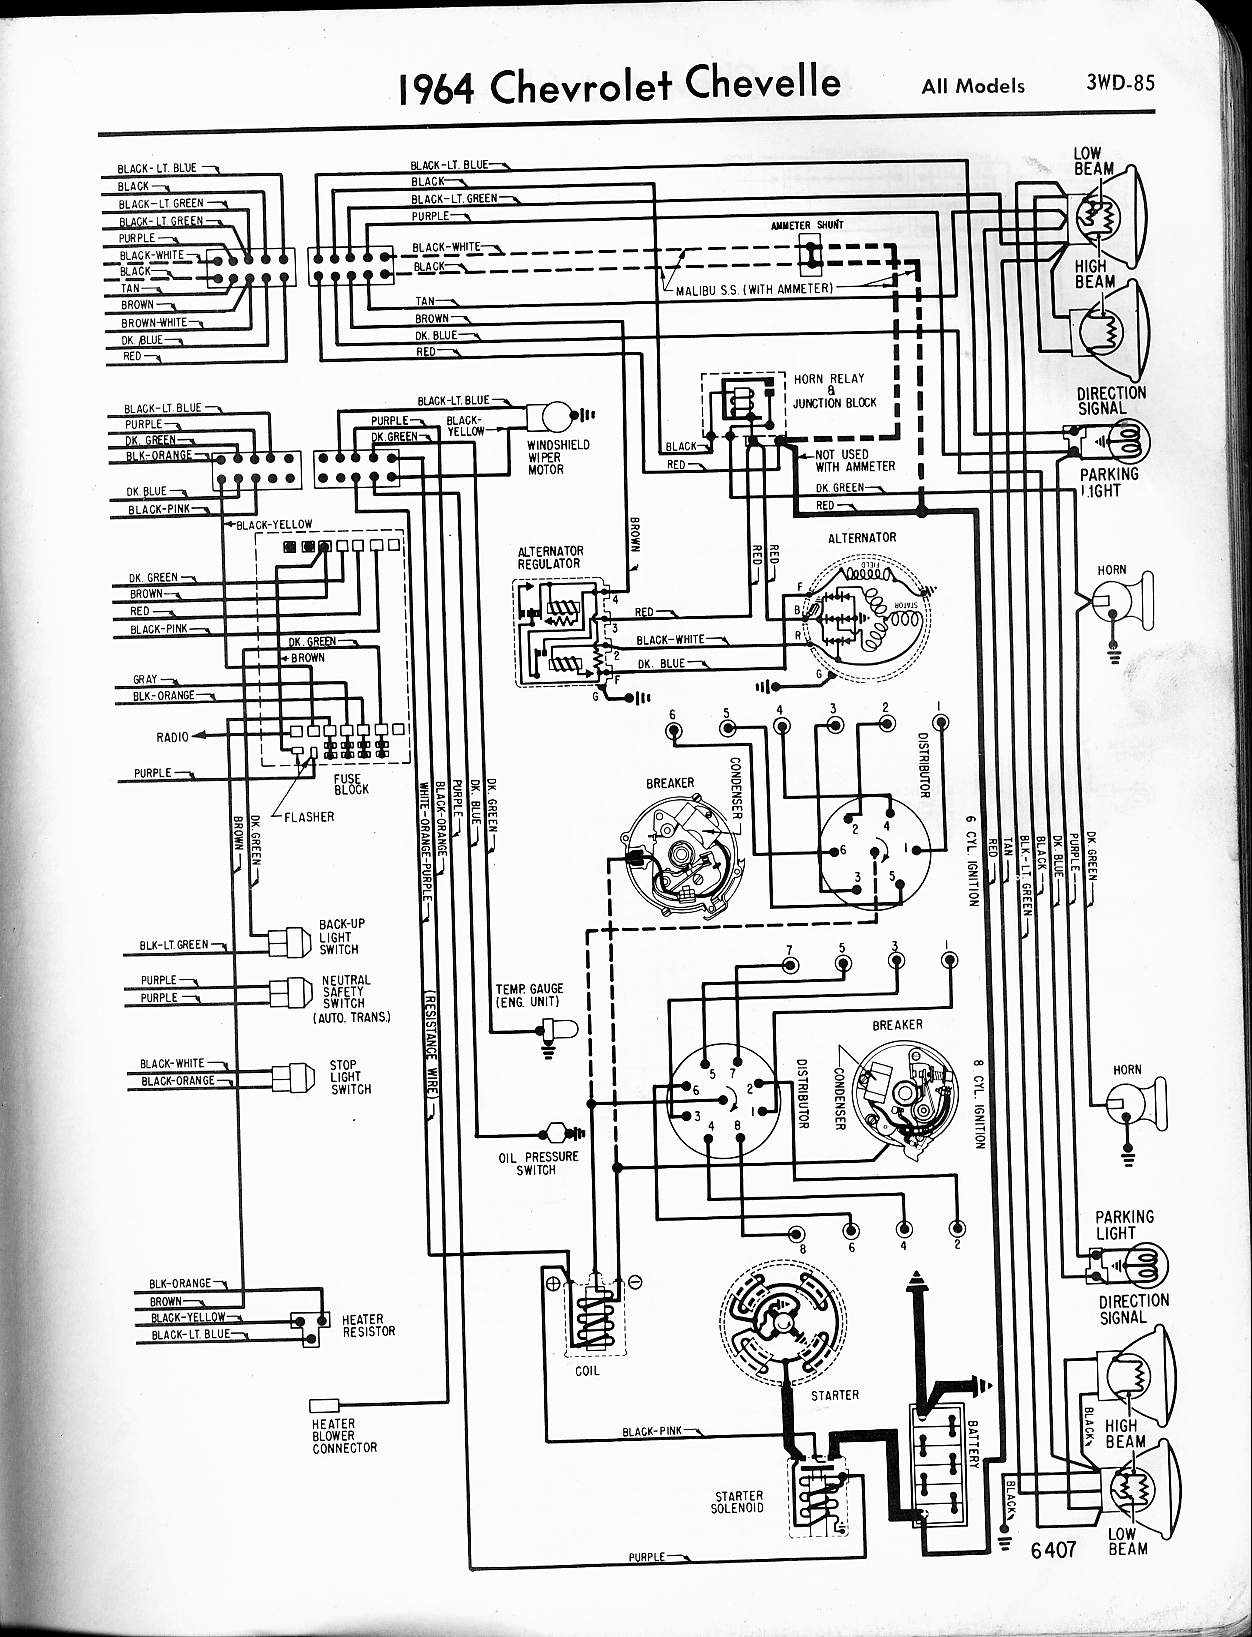 1966 Gto Dash Wiring Diagram Reinvent Your 1967 Buick Lesabre Diagrams 66 Ignition Switch Detailed Schematics Rh Mrskindsclass Com Wiper